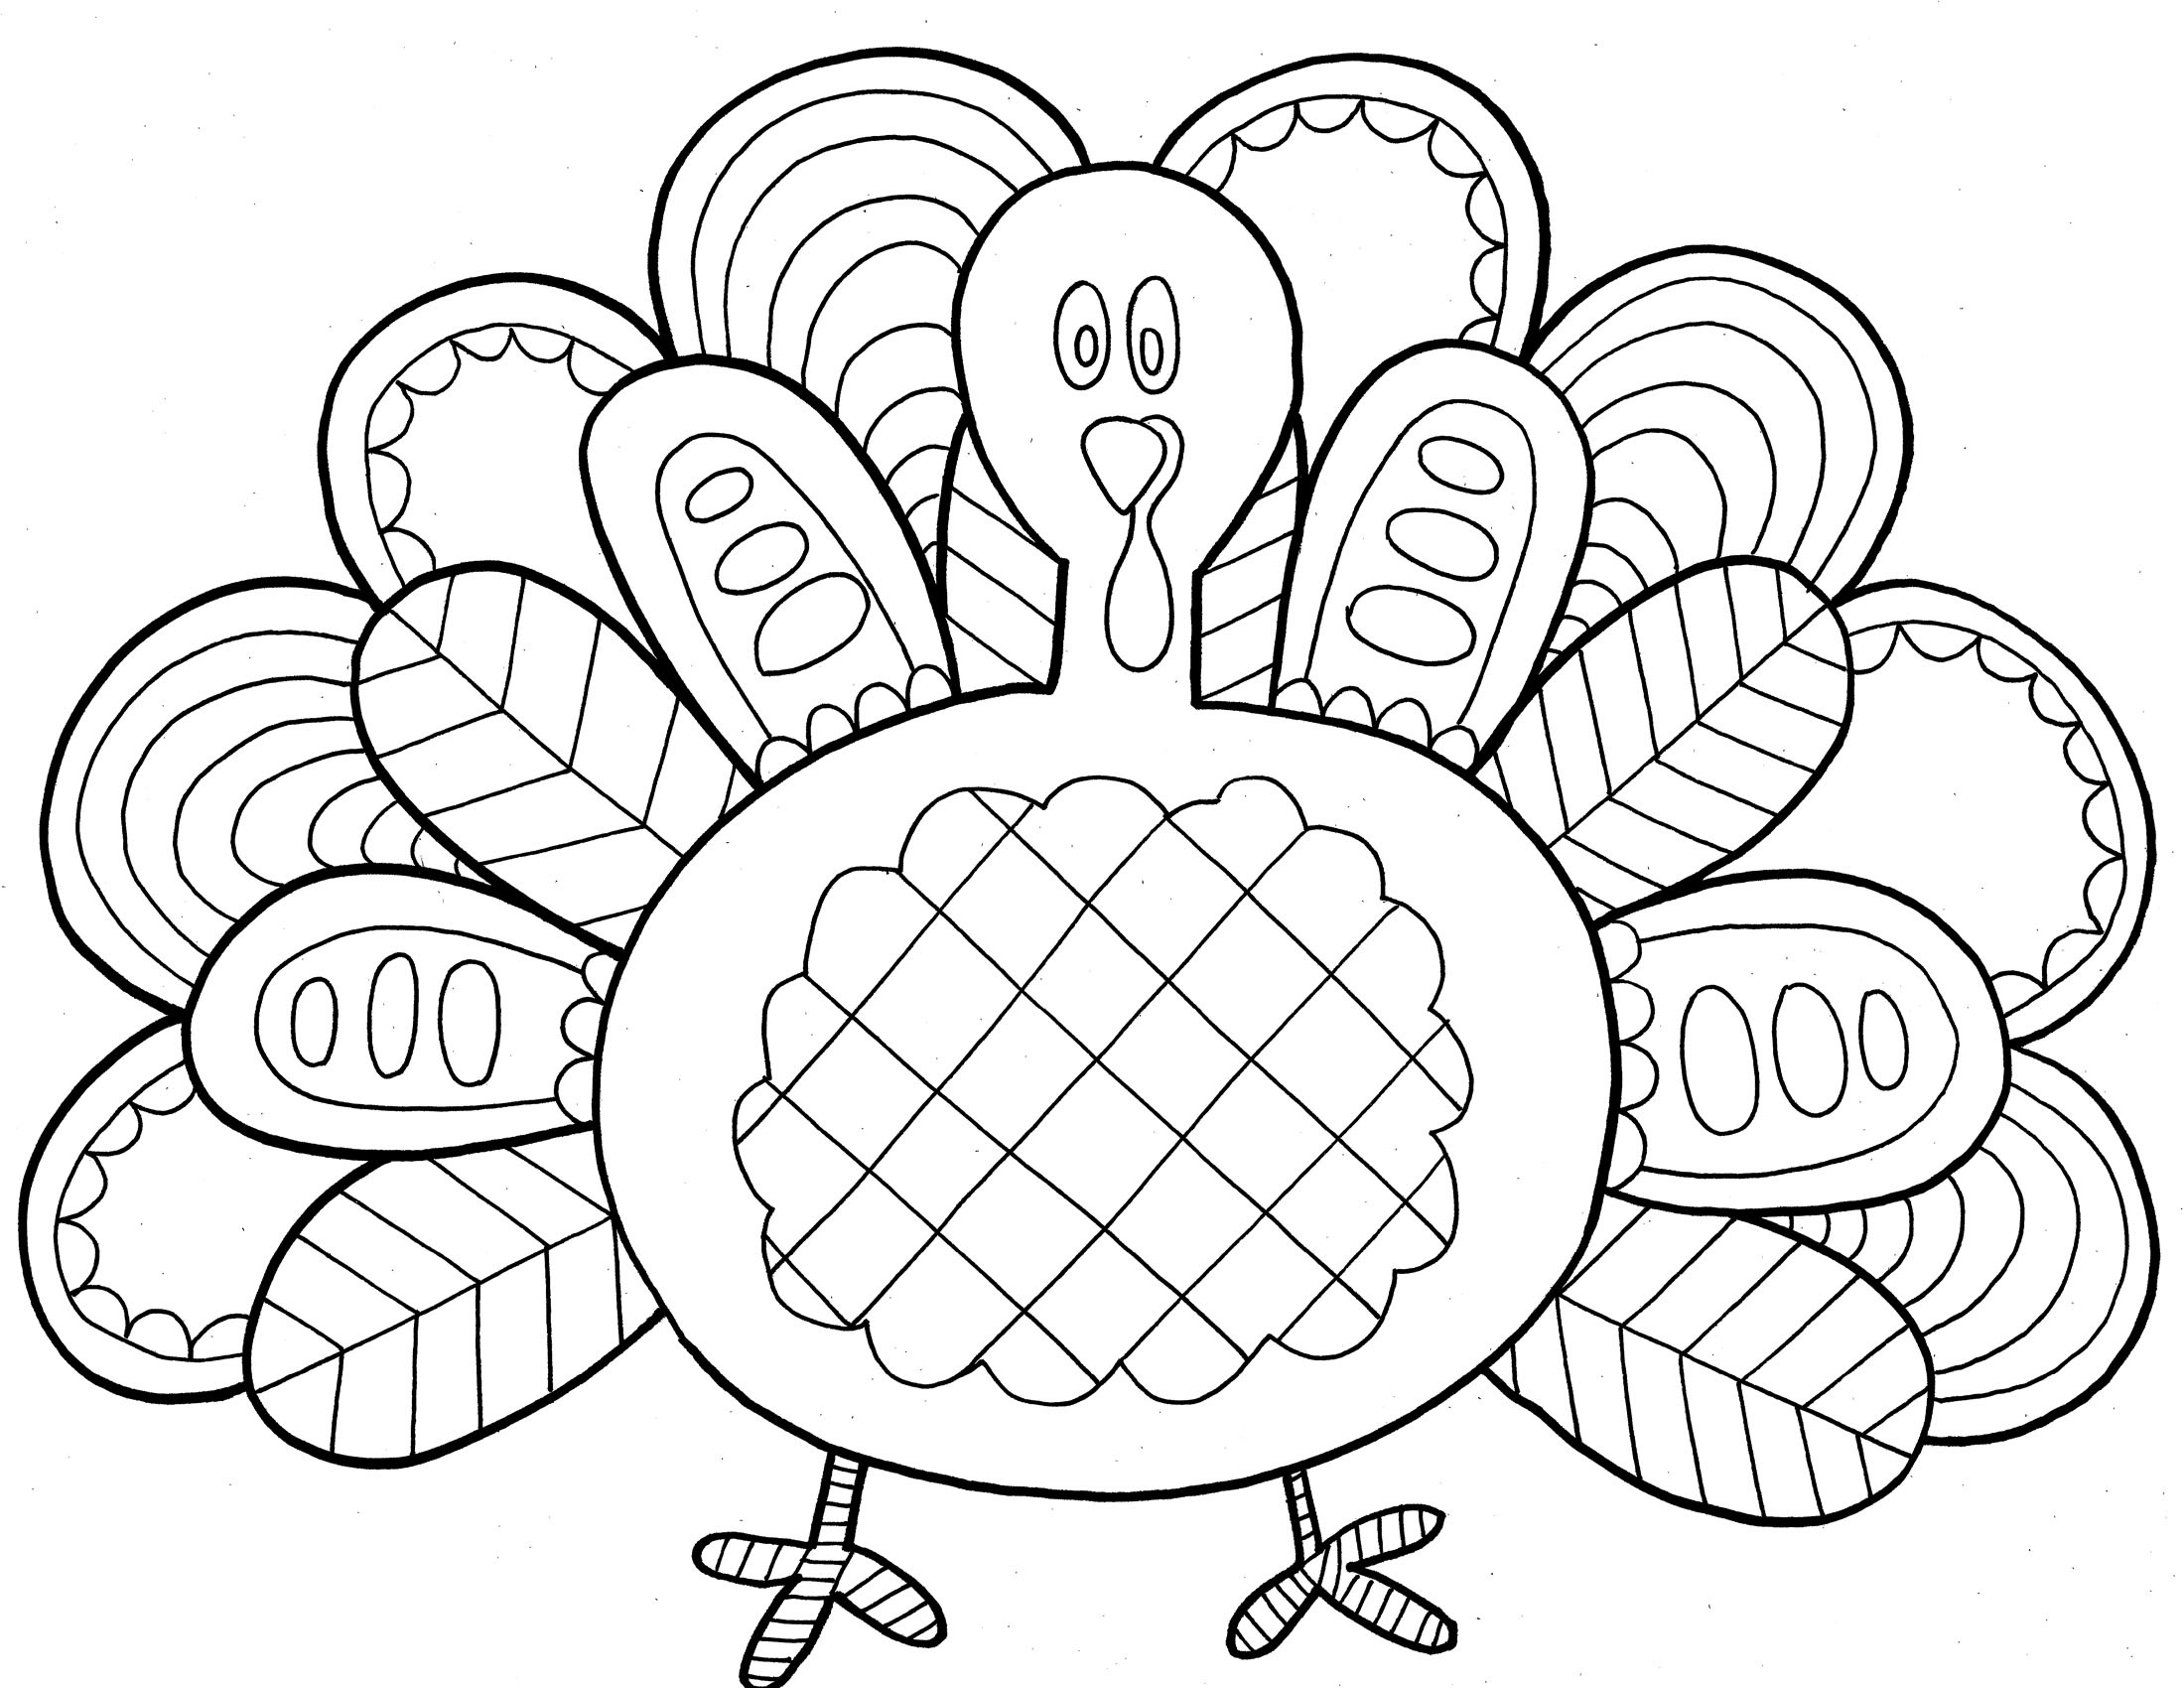 thanksgiving color page thanksgiving coloring sheets 2019 educative printable thanksgiving color page